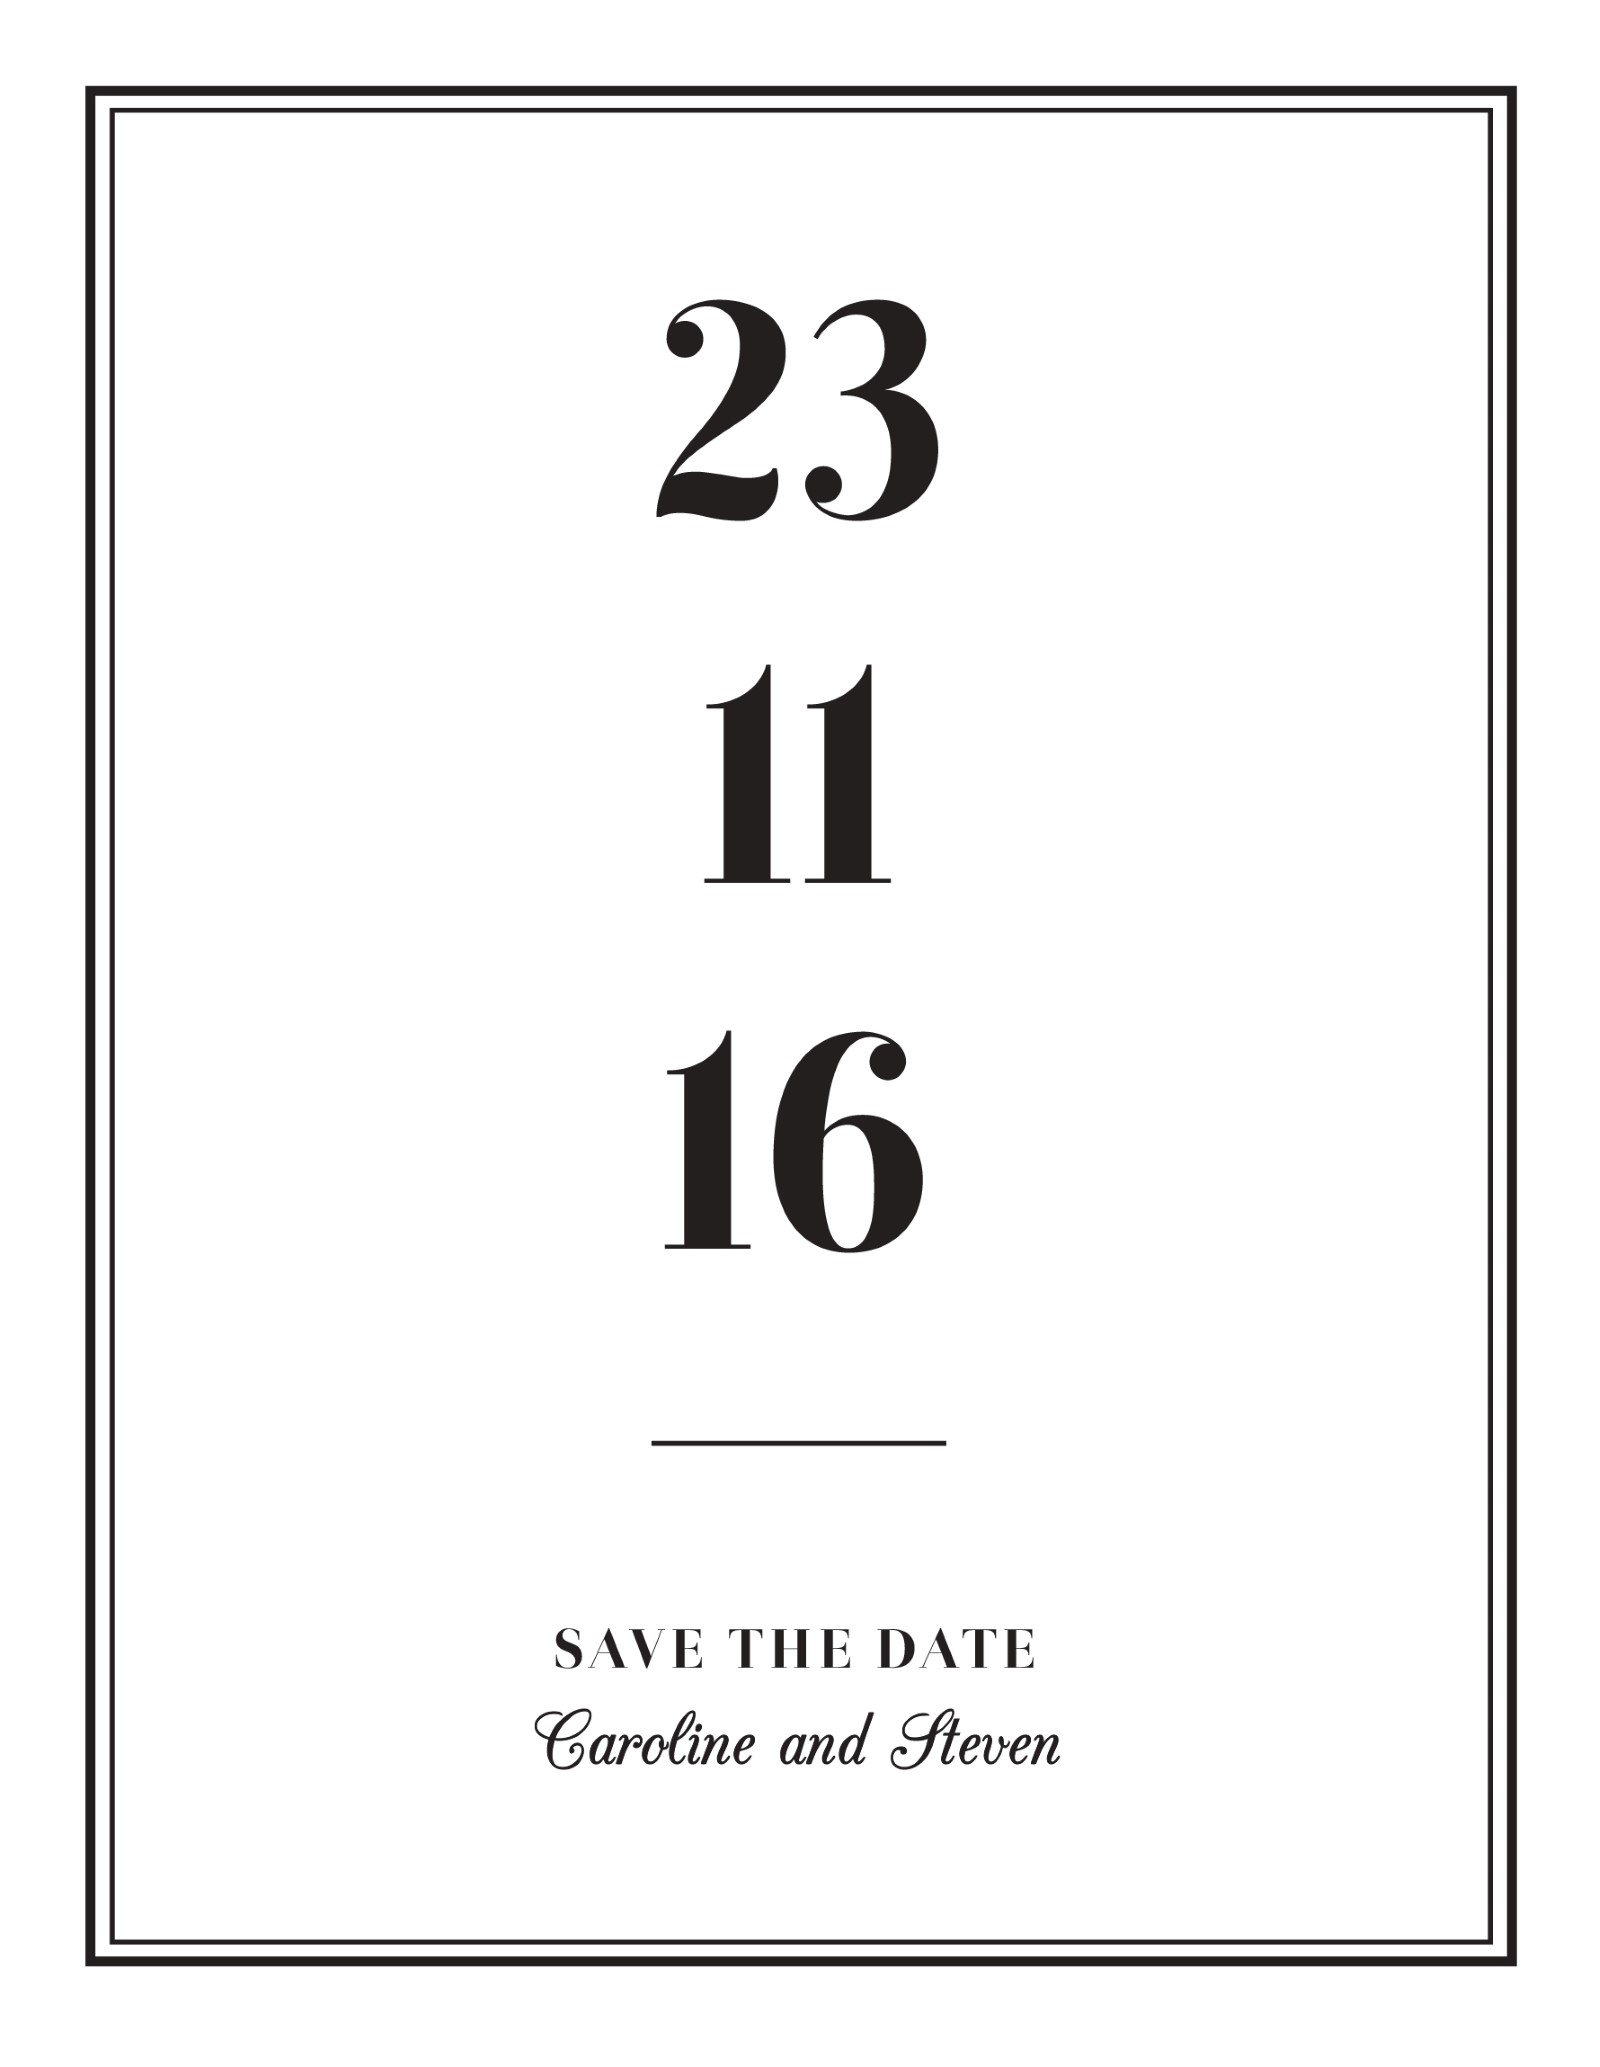 Vintage - Save The Date